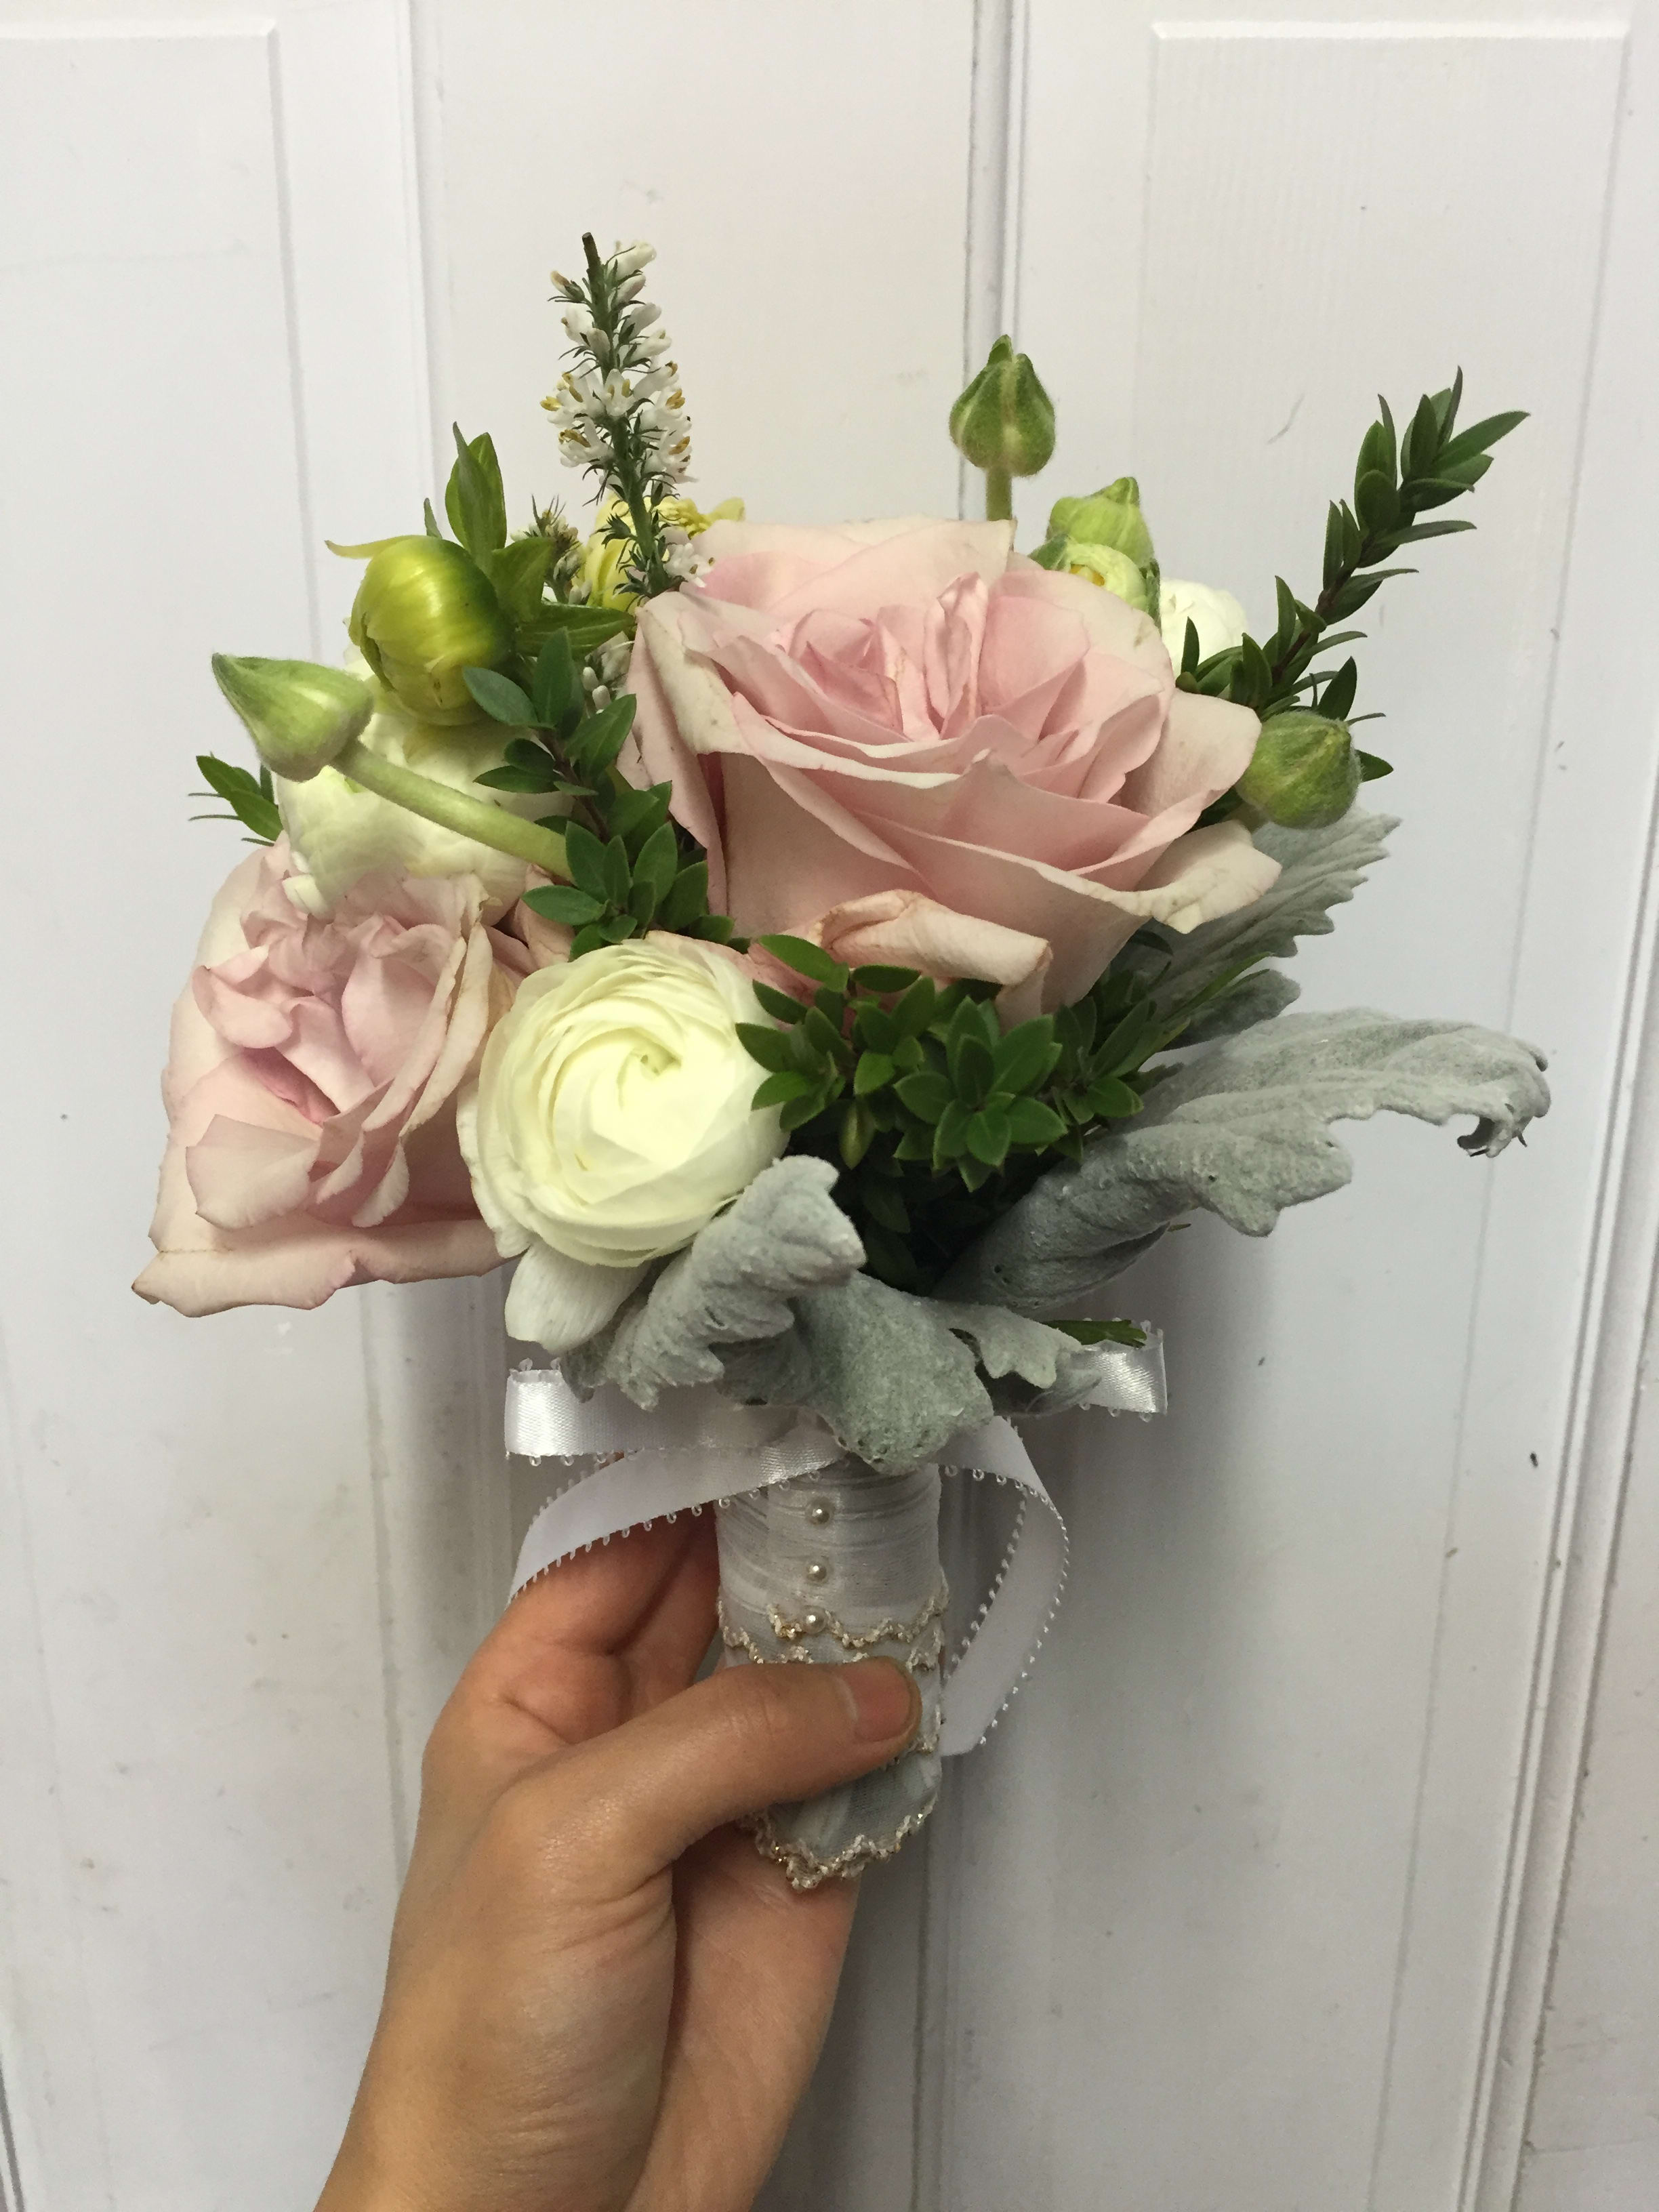 Rose Bridesmaid Bouquet Cheaper Than Retail Price Buy Clothing Accessories And Lifestyle Products For Women Men